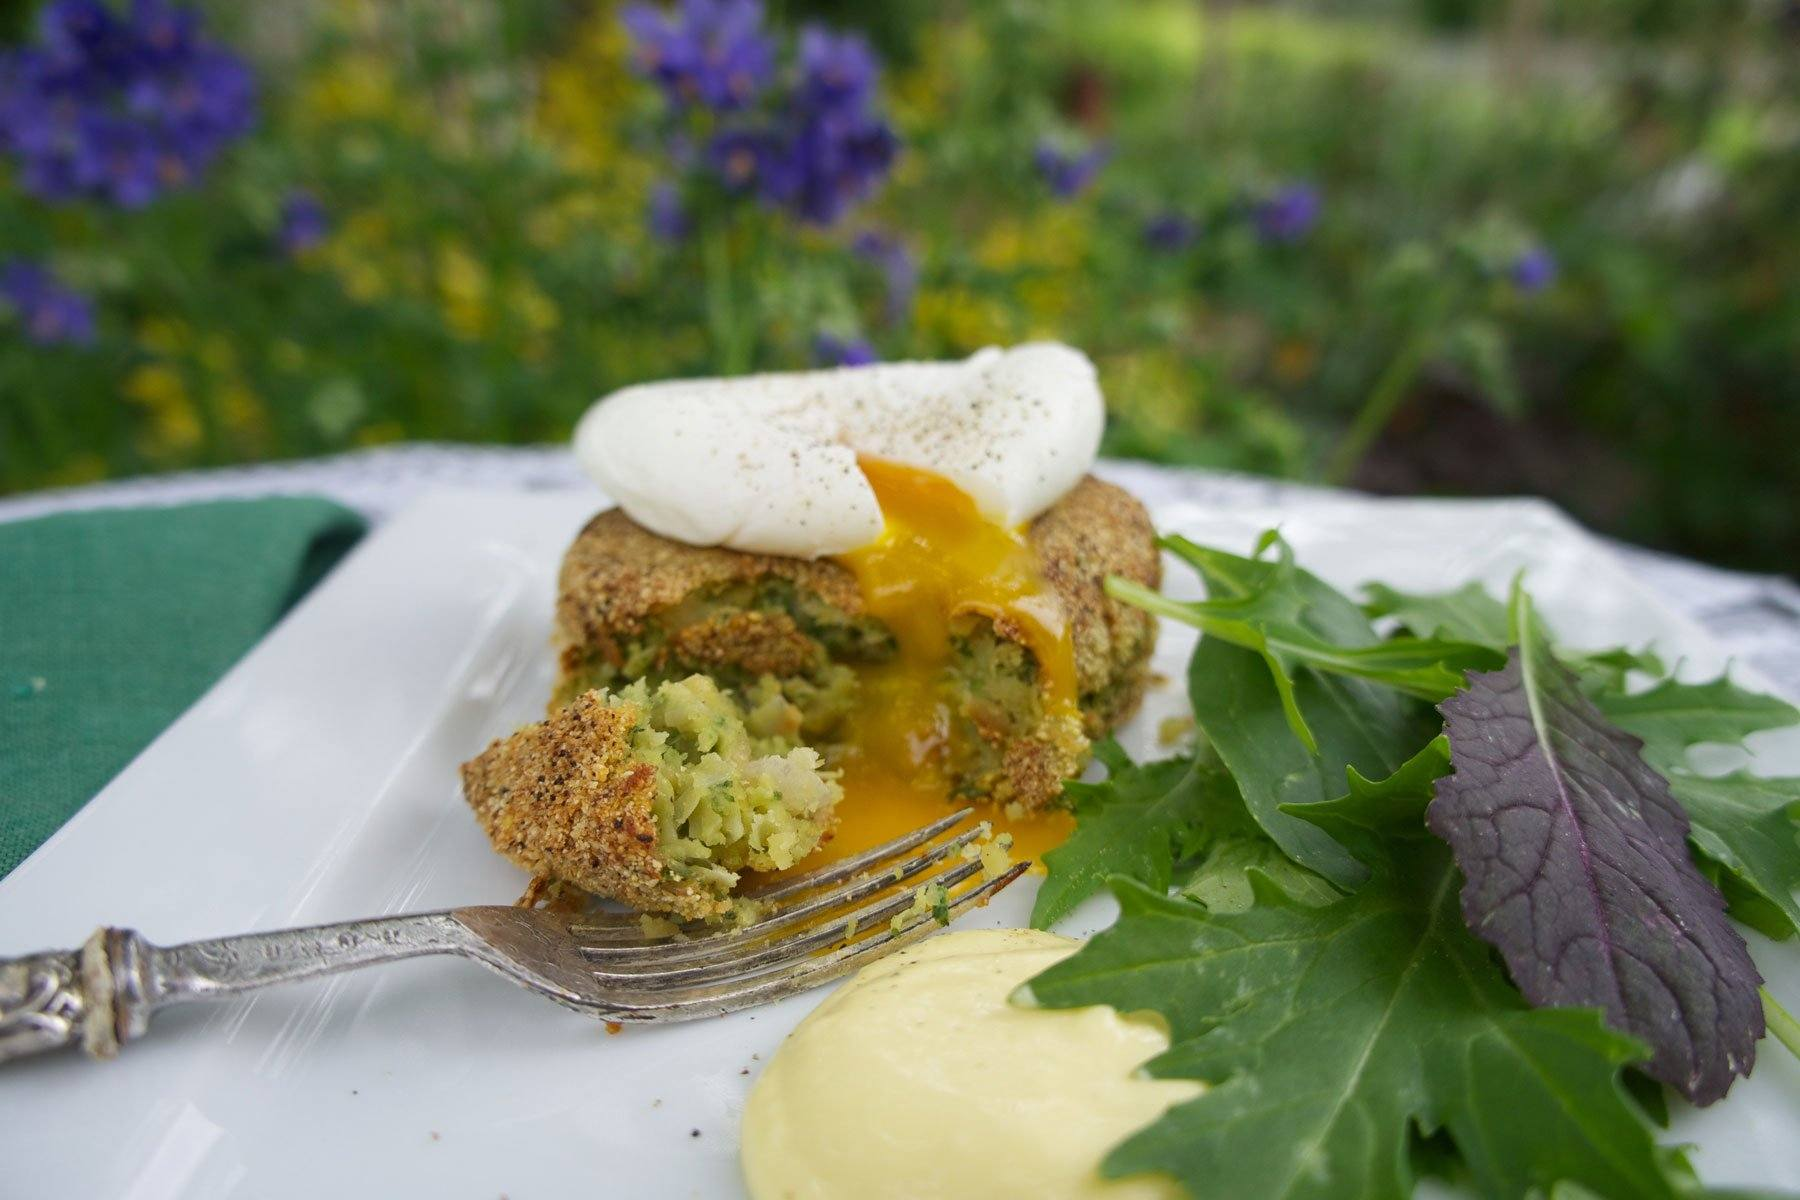 Marrowfat Pea and Spinach Cakes